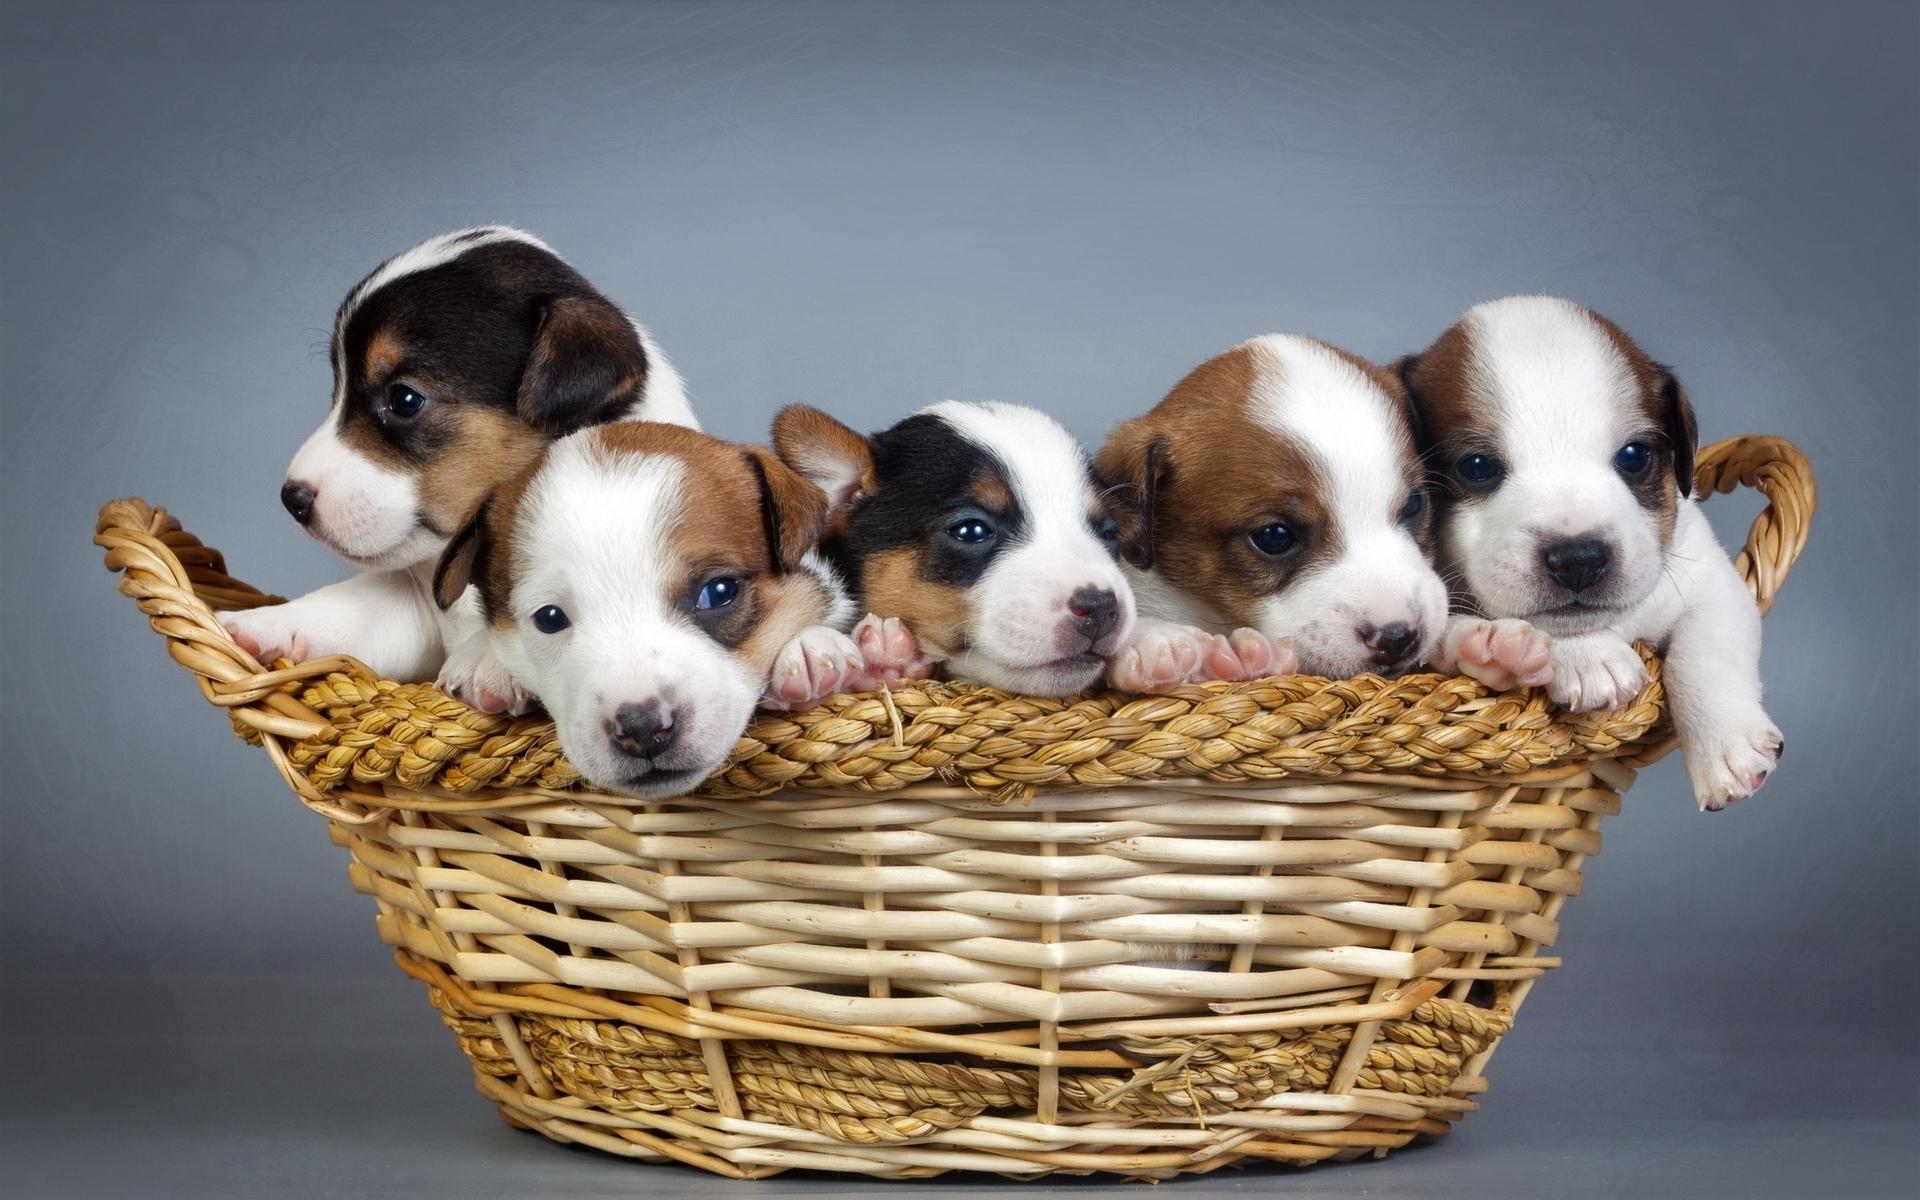 Puppies, Puppies, Puppies Galore!! - Furry Babies